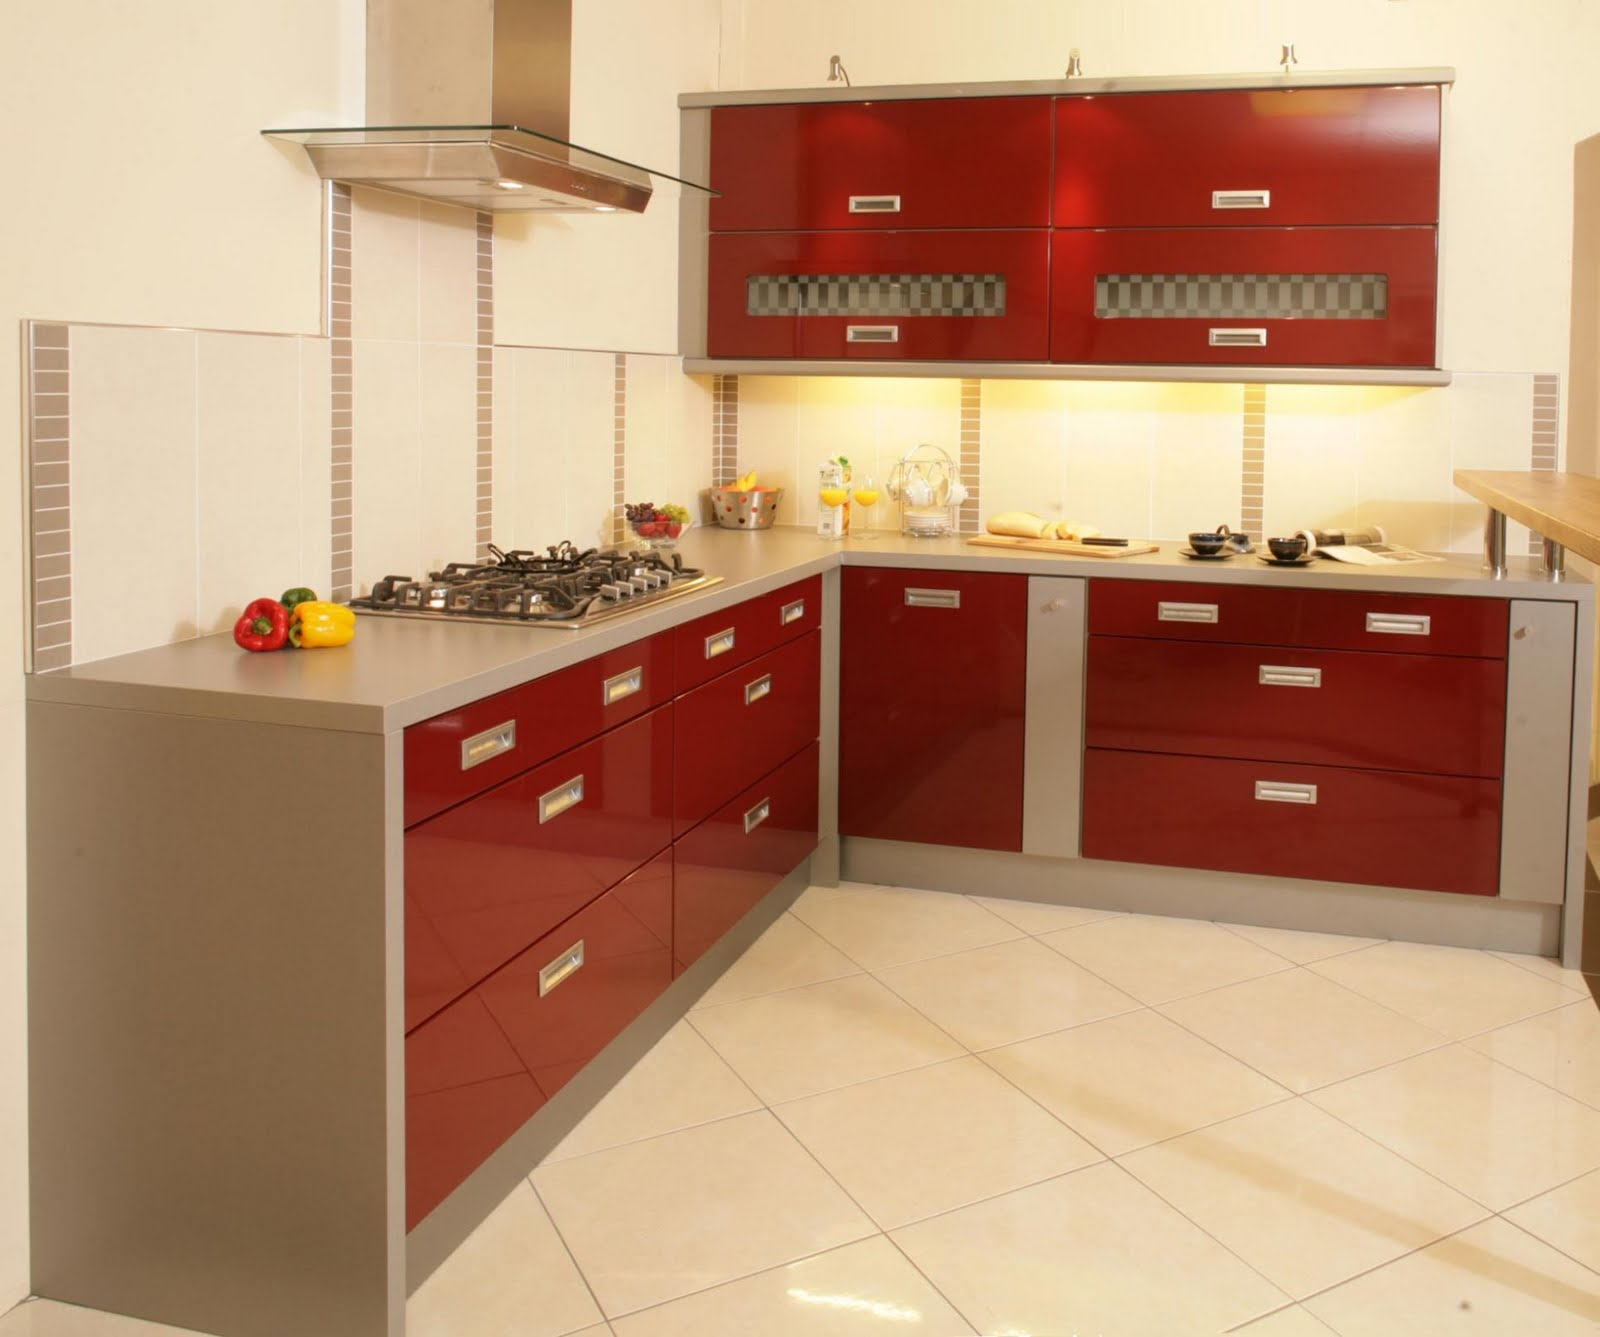 cabinets kitchen pictures red kitchen cabinets kitchen design ideas set